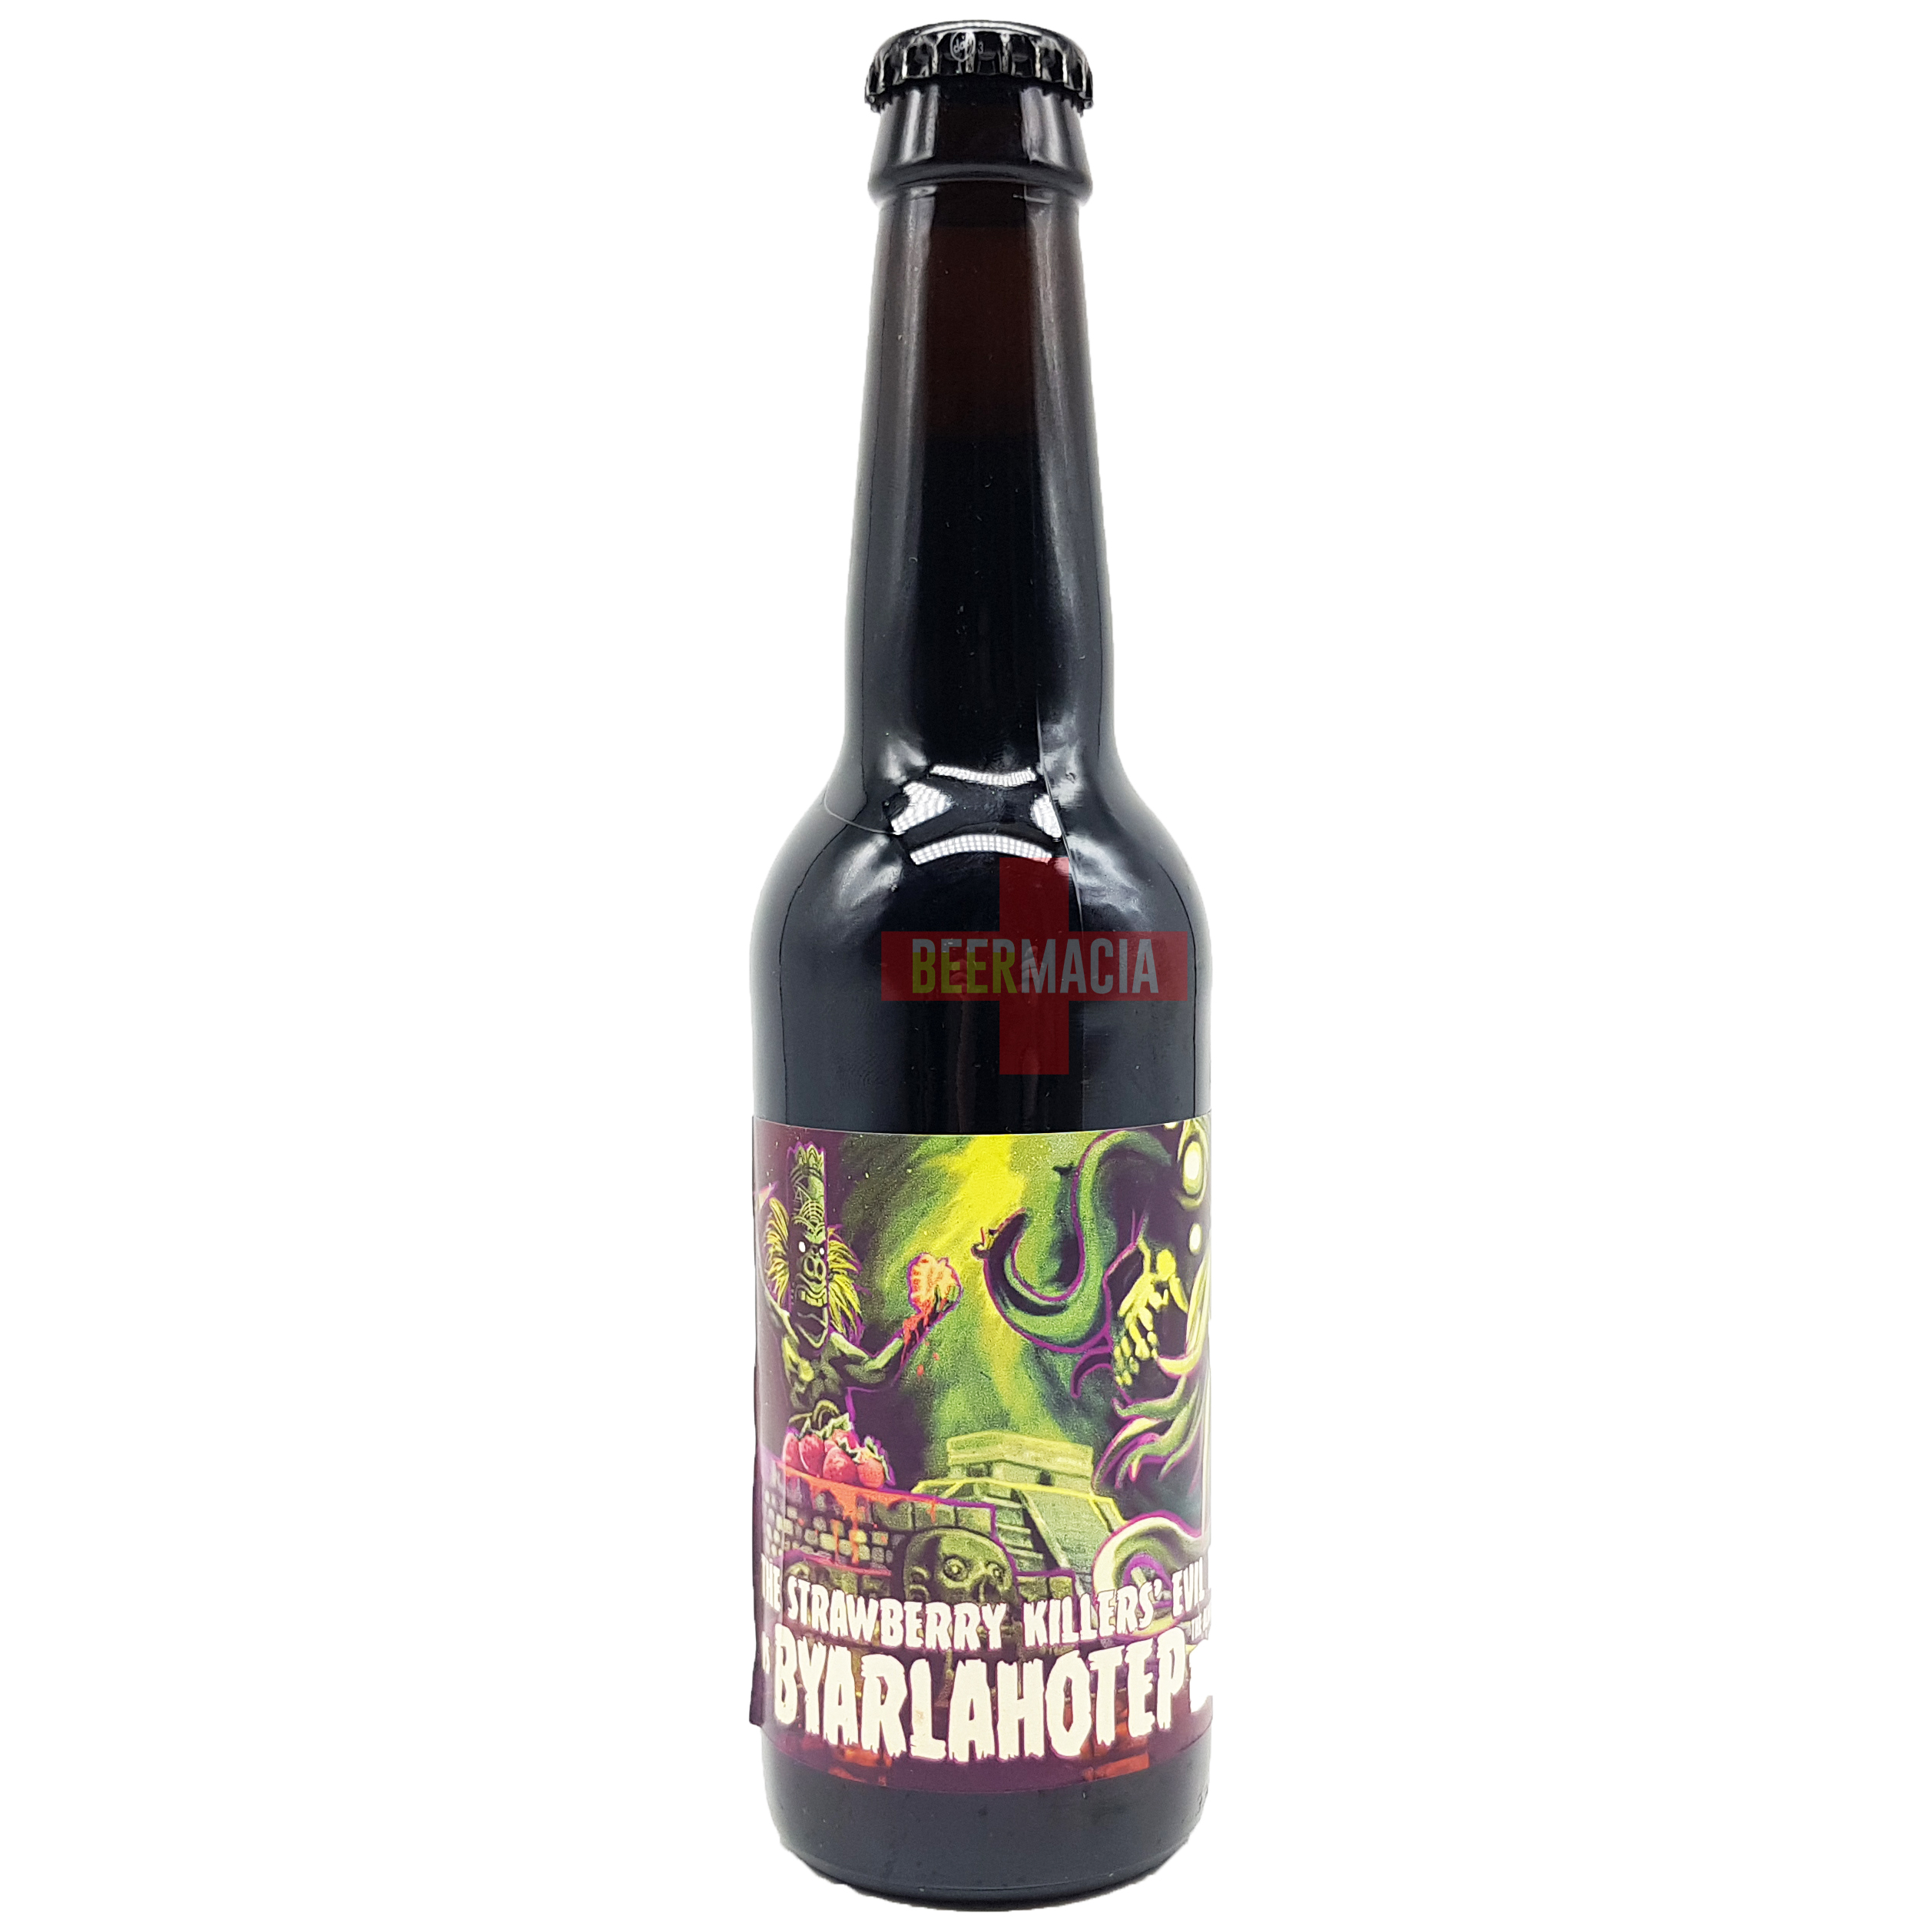 Yria Cervezas / Reptilian Brewery - The Strawberry Killers' Evil Tiki Cult Vs Byarlahotep The Almighty Dark God Of Beer 33cl